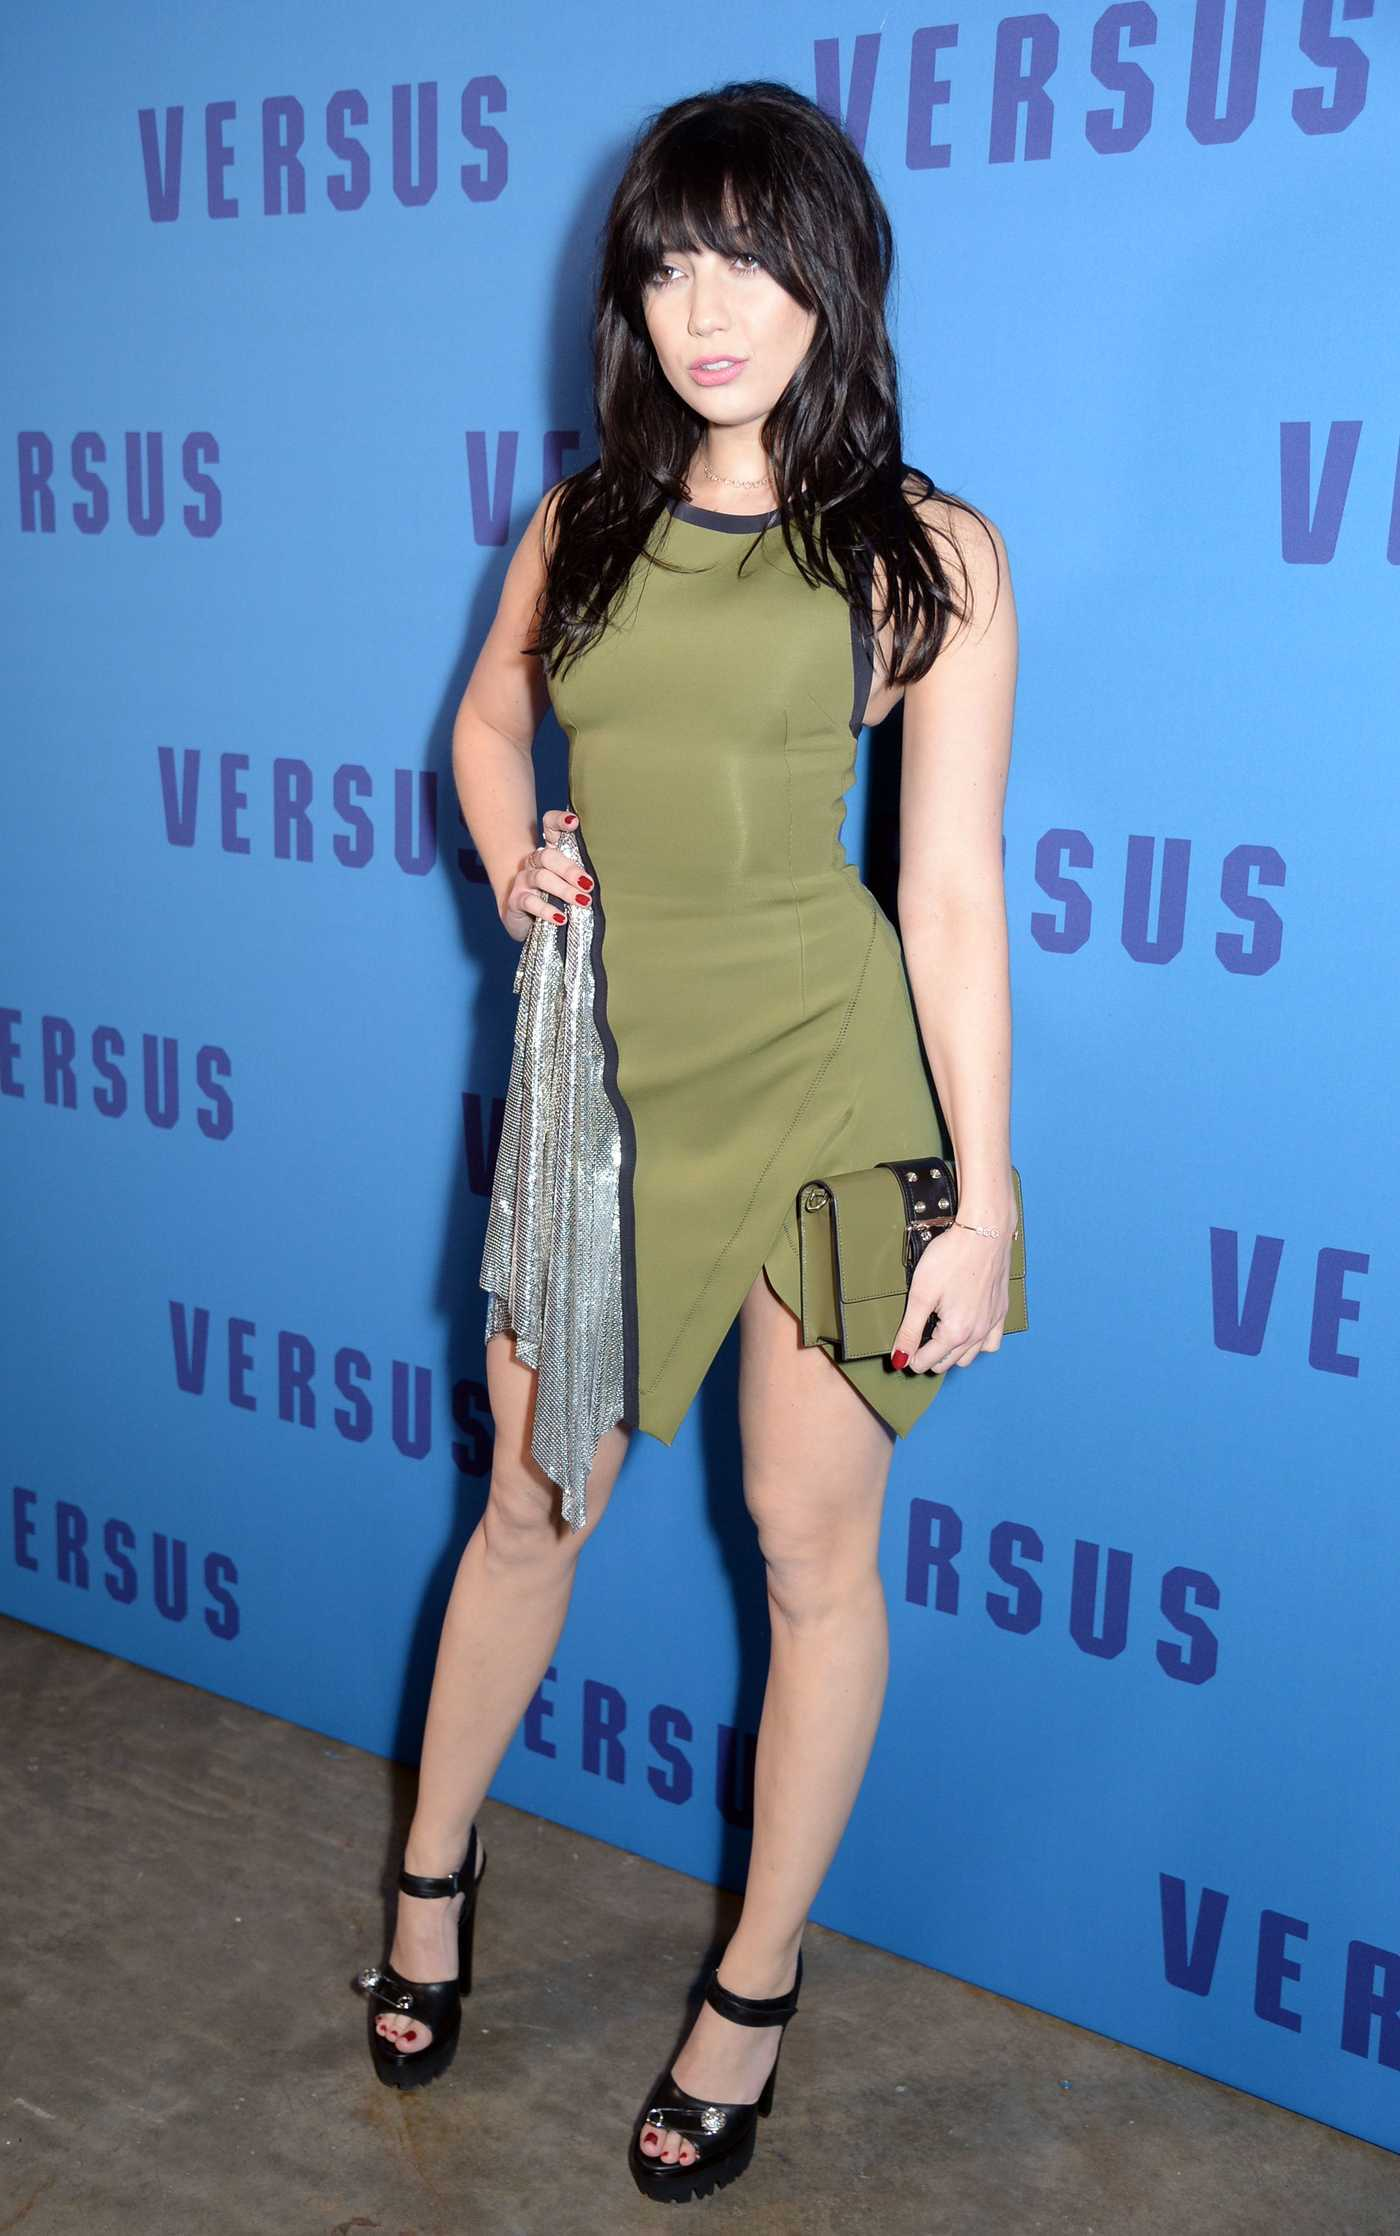 Daisy Lowe at the Versus Versace Show During the London Fashion Week 02/18/2017